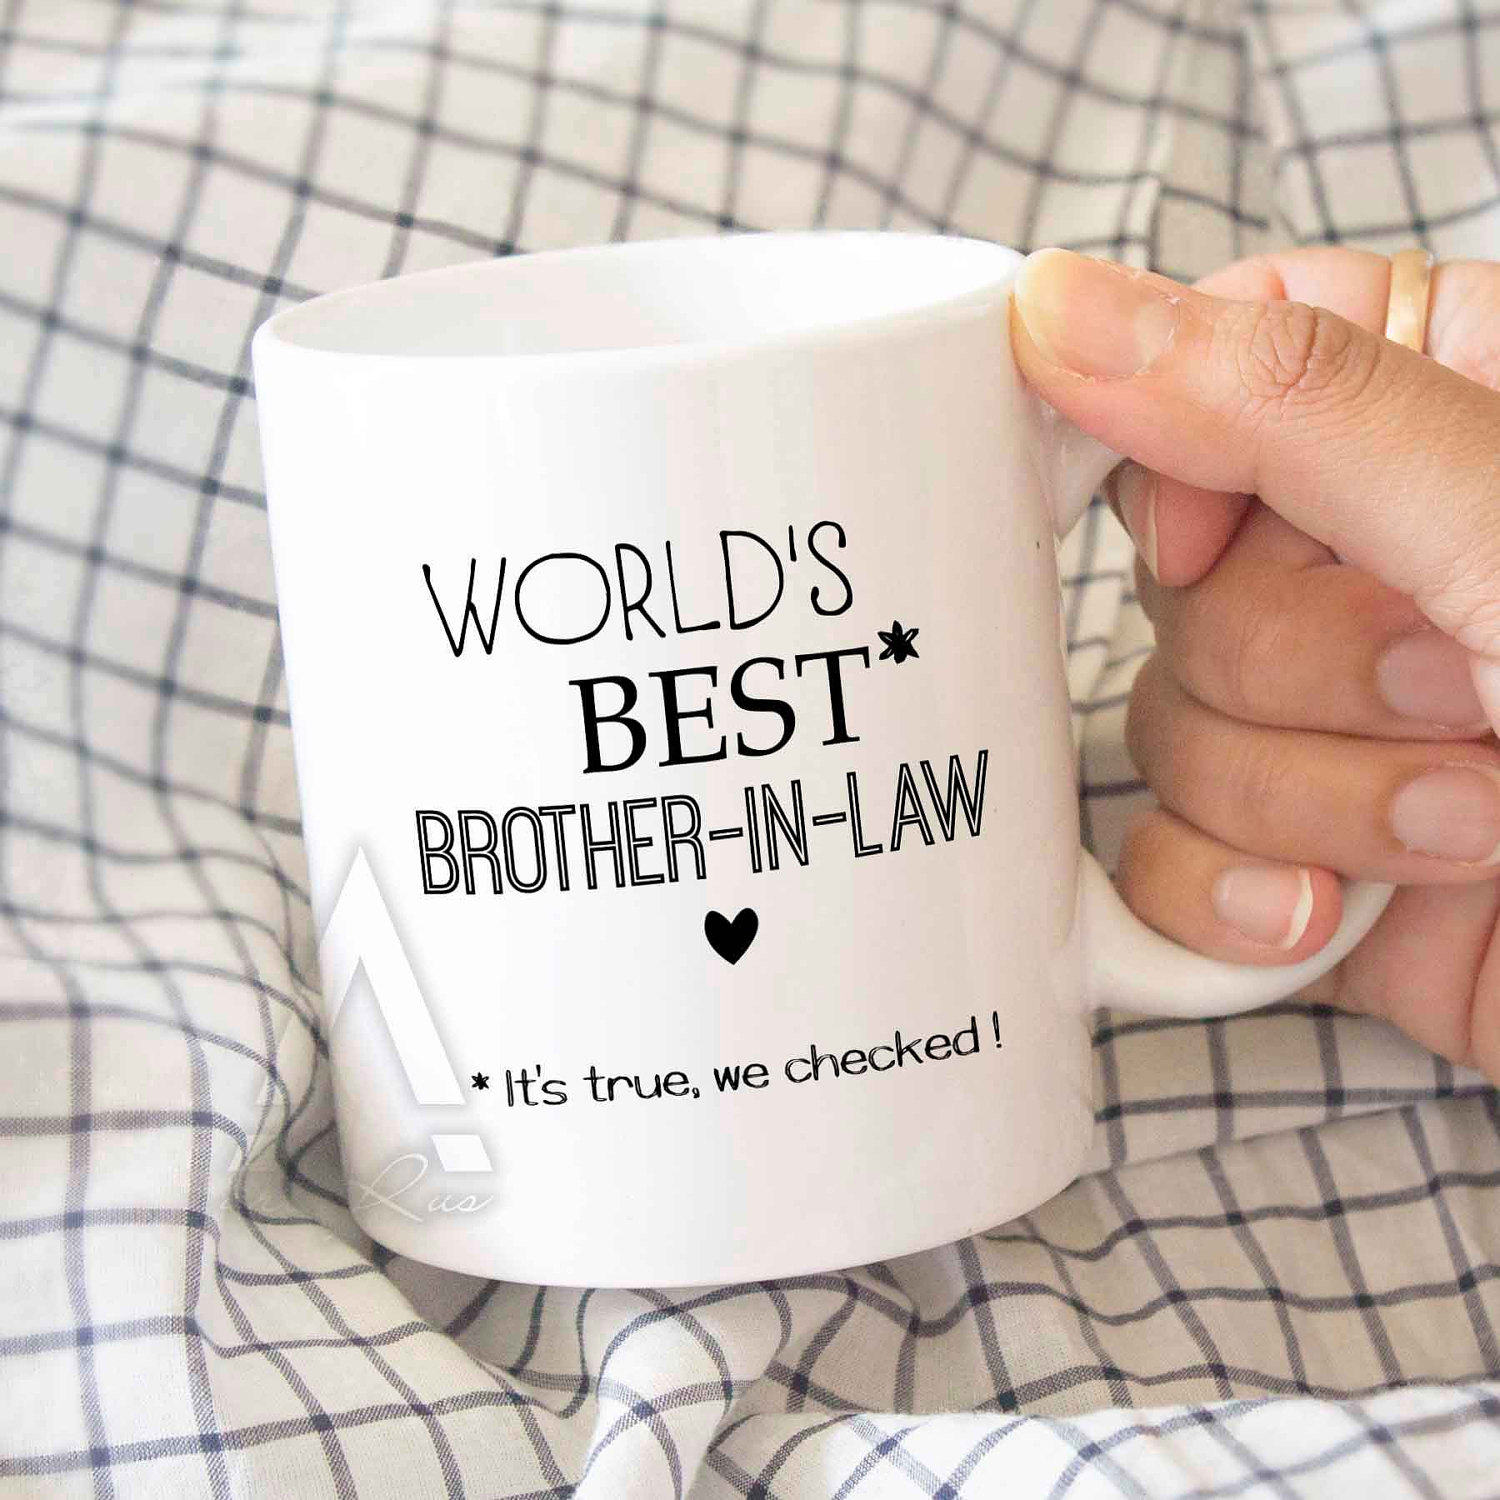 6 PRECIOUS GIFTS THAT CAN BE GIVEN TO BROTHER IN LAW